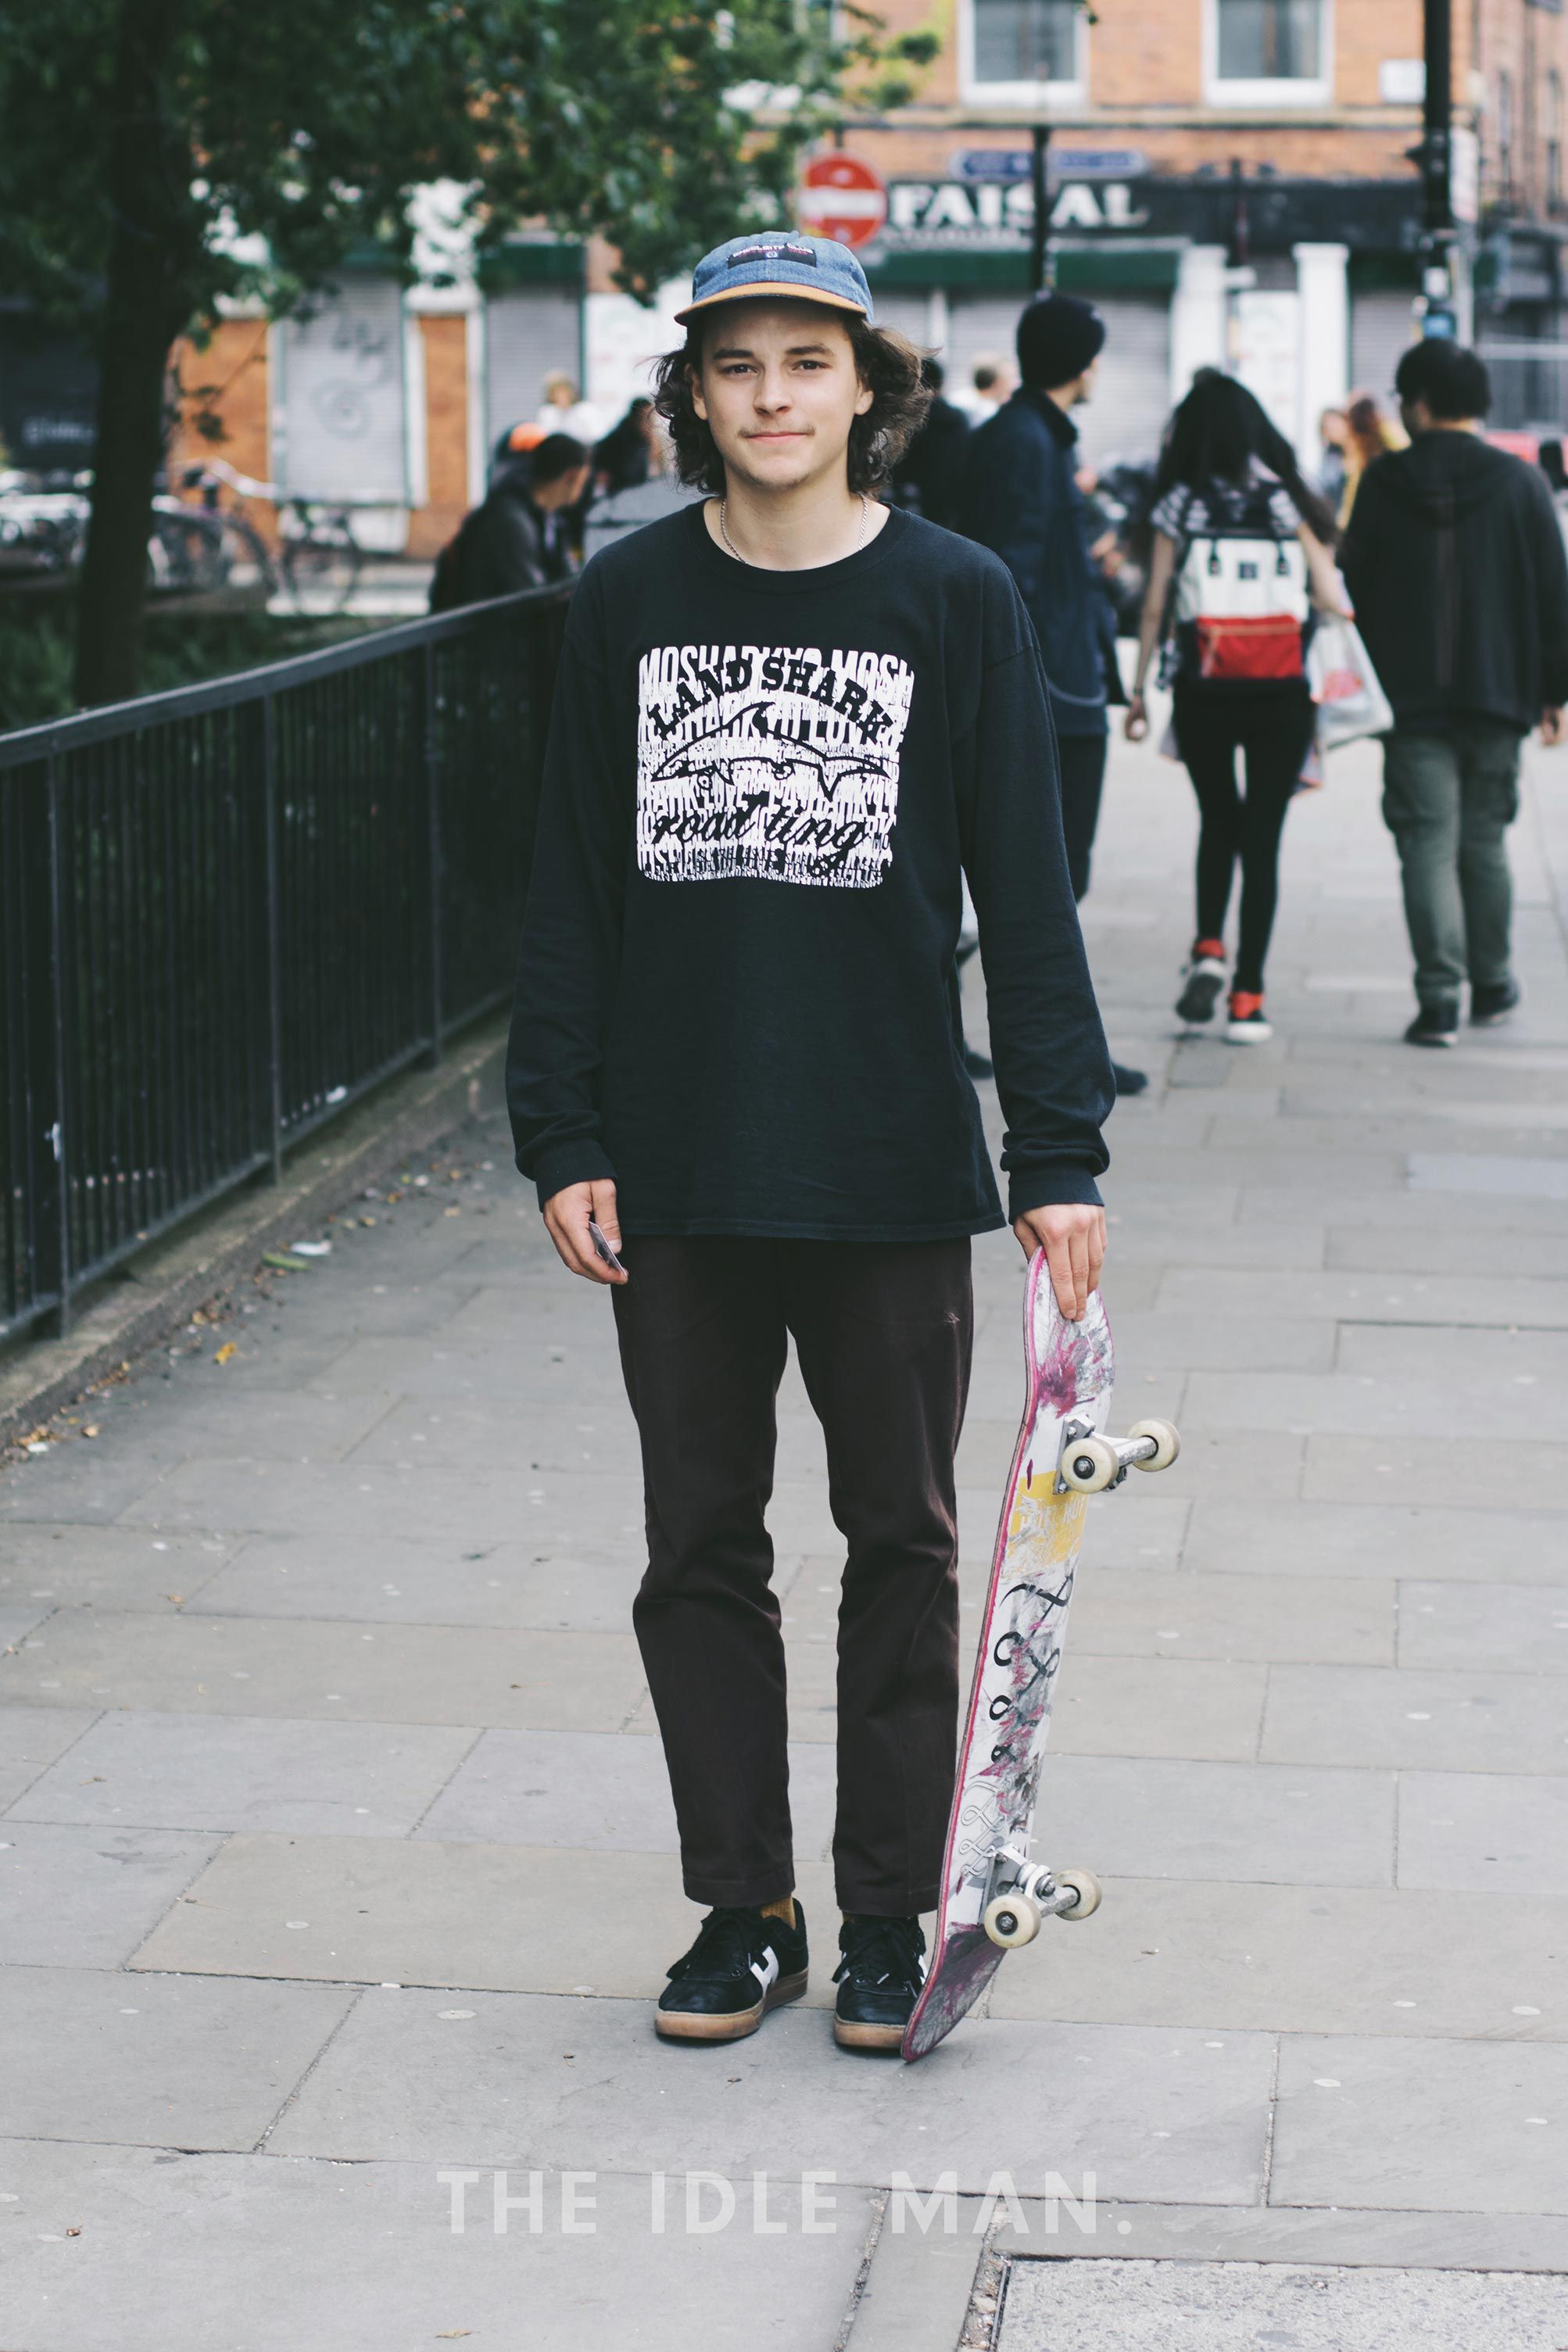 Men 39 S Street Style Skater Boy Get This Skater Look With Black Trousers A Long Sleeve Black